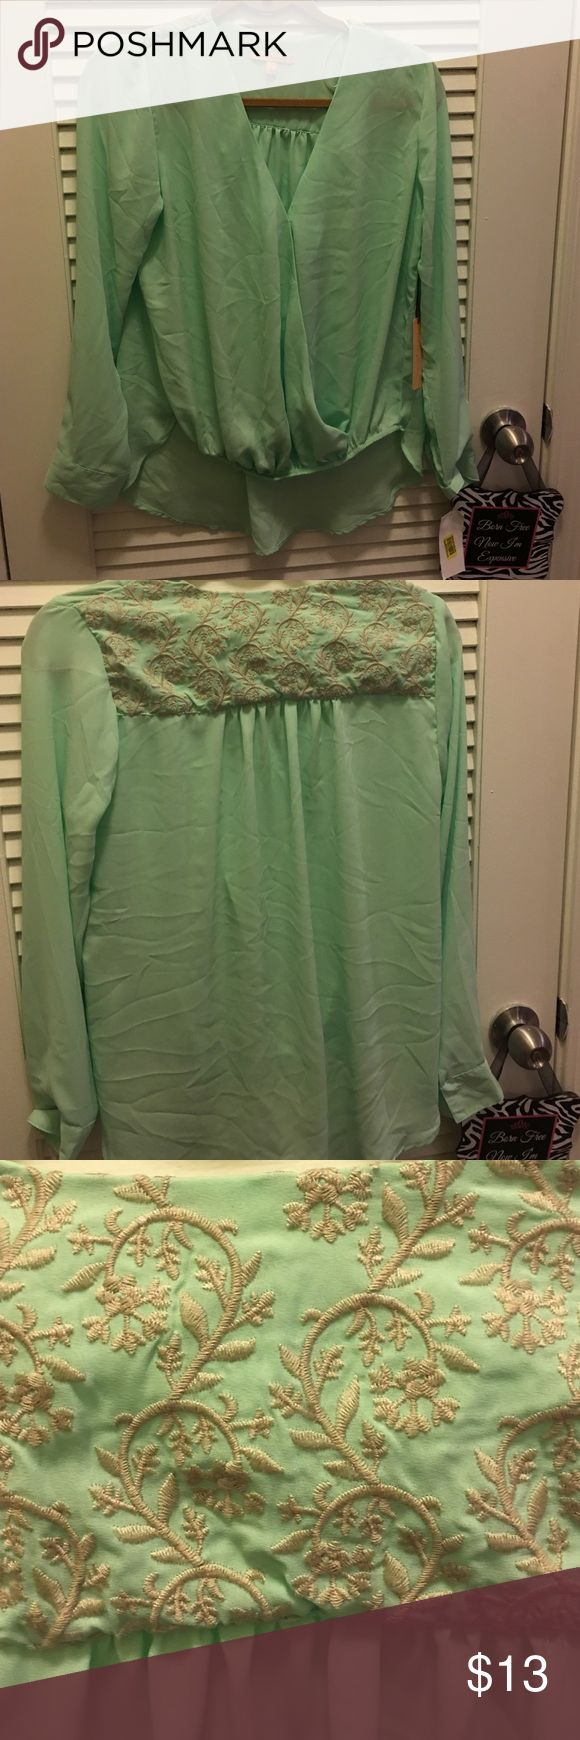 Mint green plunge blouse with lace detail Mint green plunge blouse with lace detail Gibson + Latimer Tops Blouses